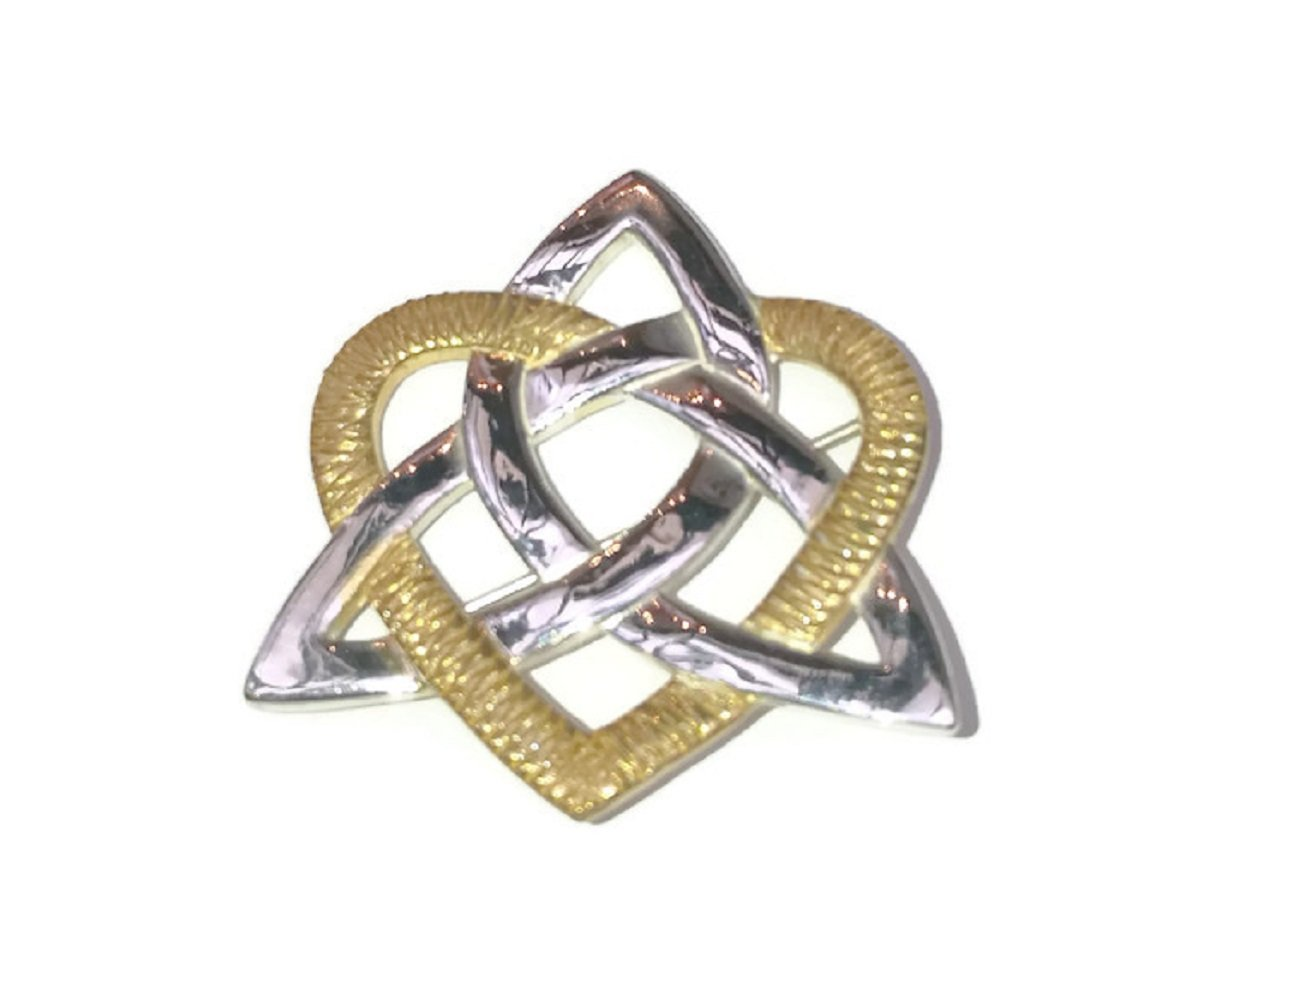 Trinity Knot Brooch & Heart Sterling Silver & 22k Gold Vermeil Irish Made